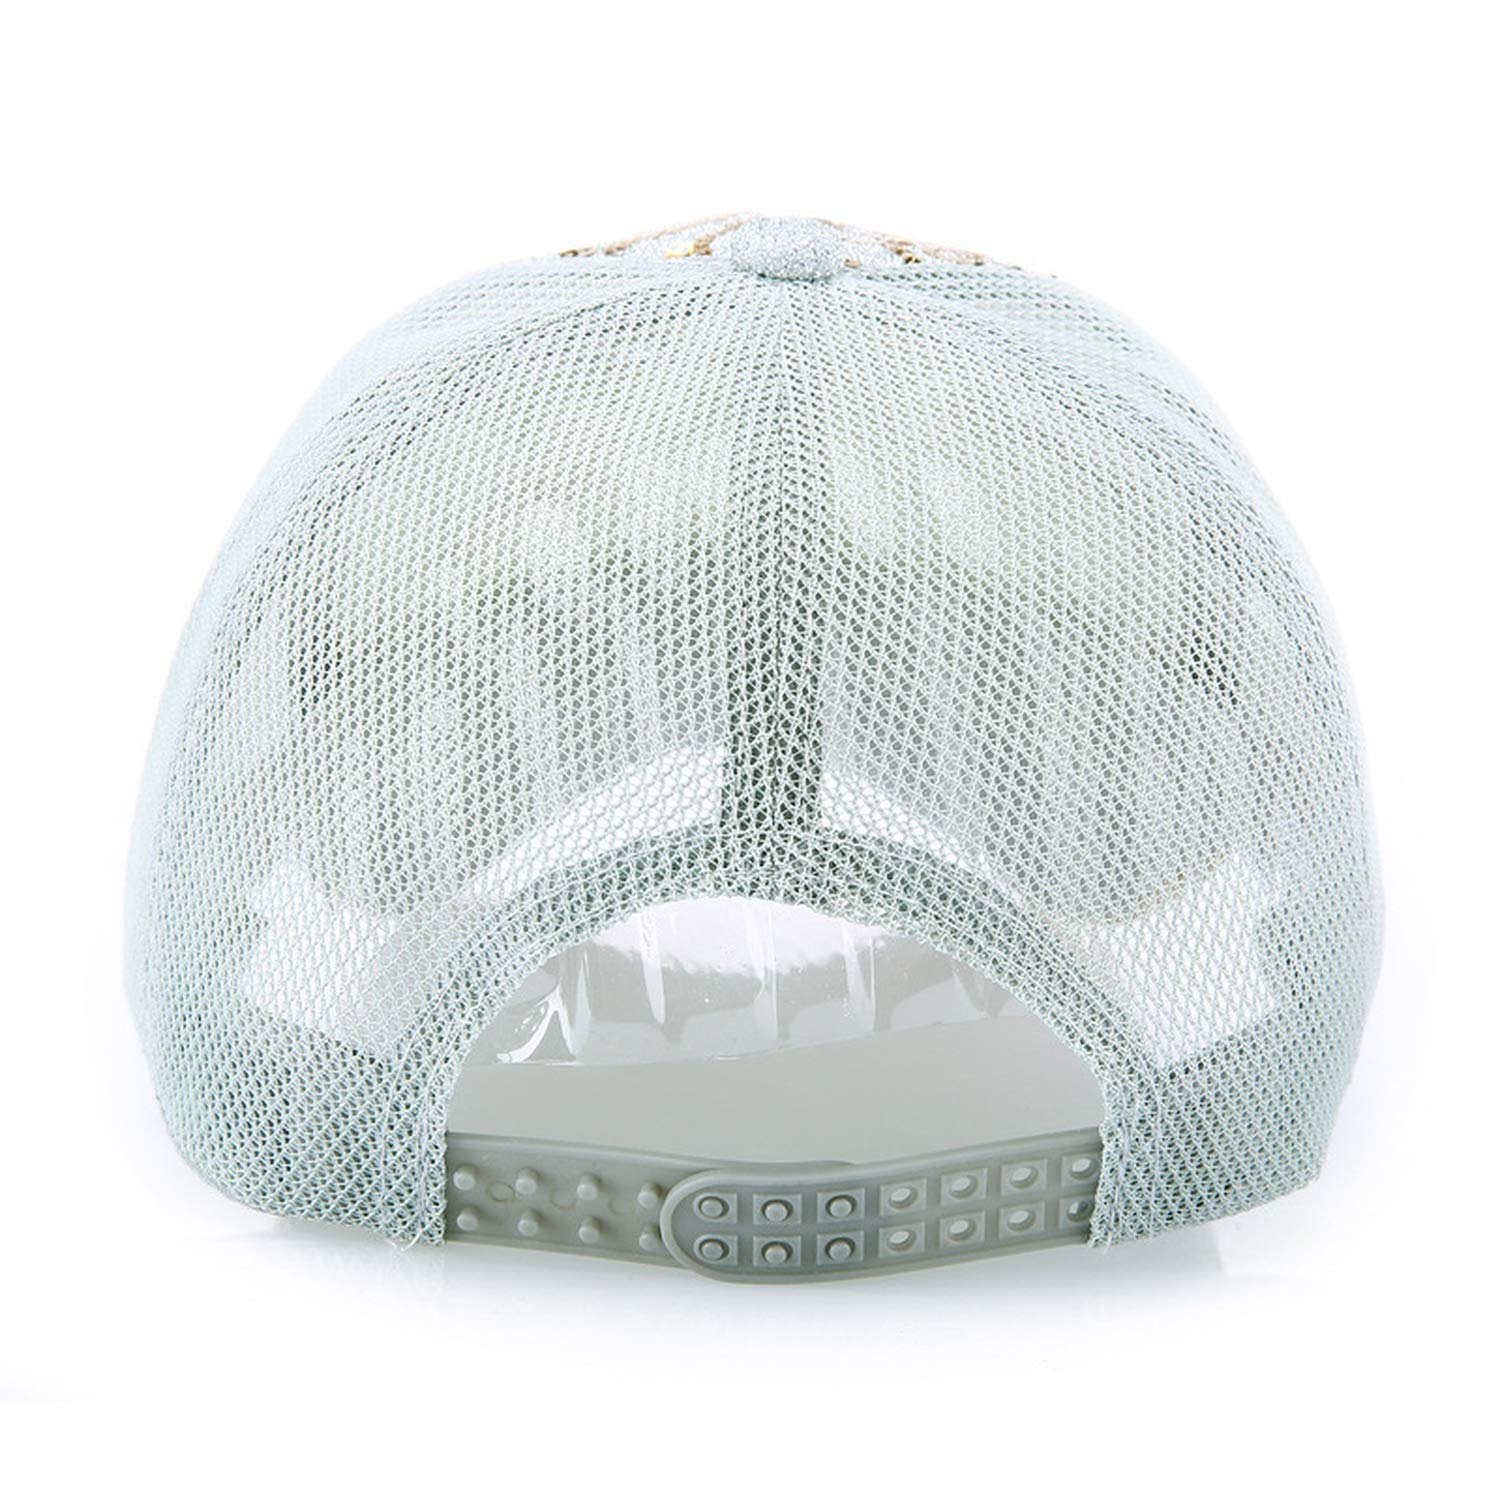 Ladys Baseball Cap with Shiny Sequin Trucker mesh Hat for Women Hiphop Irregular Stripes Lace Glitter Hats